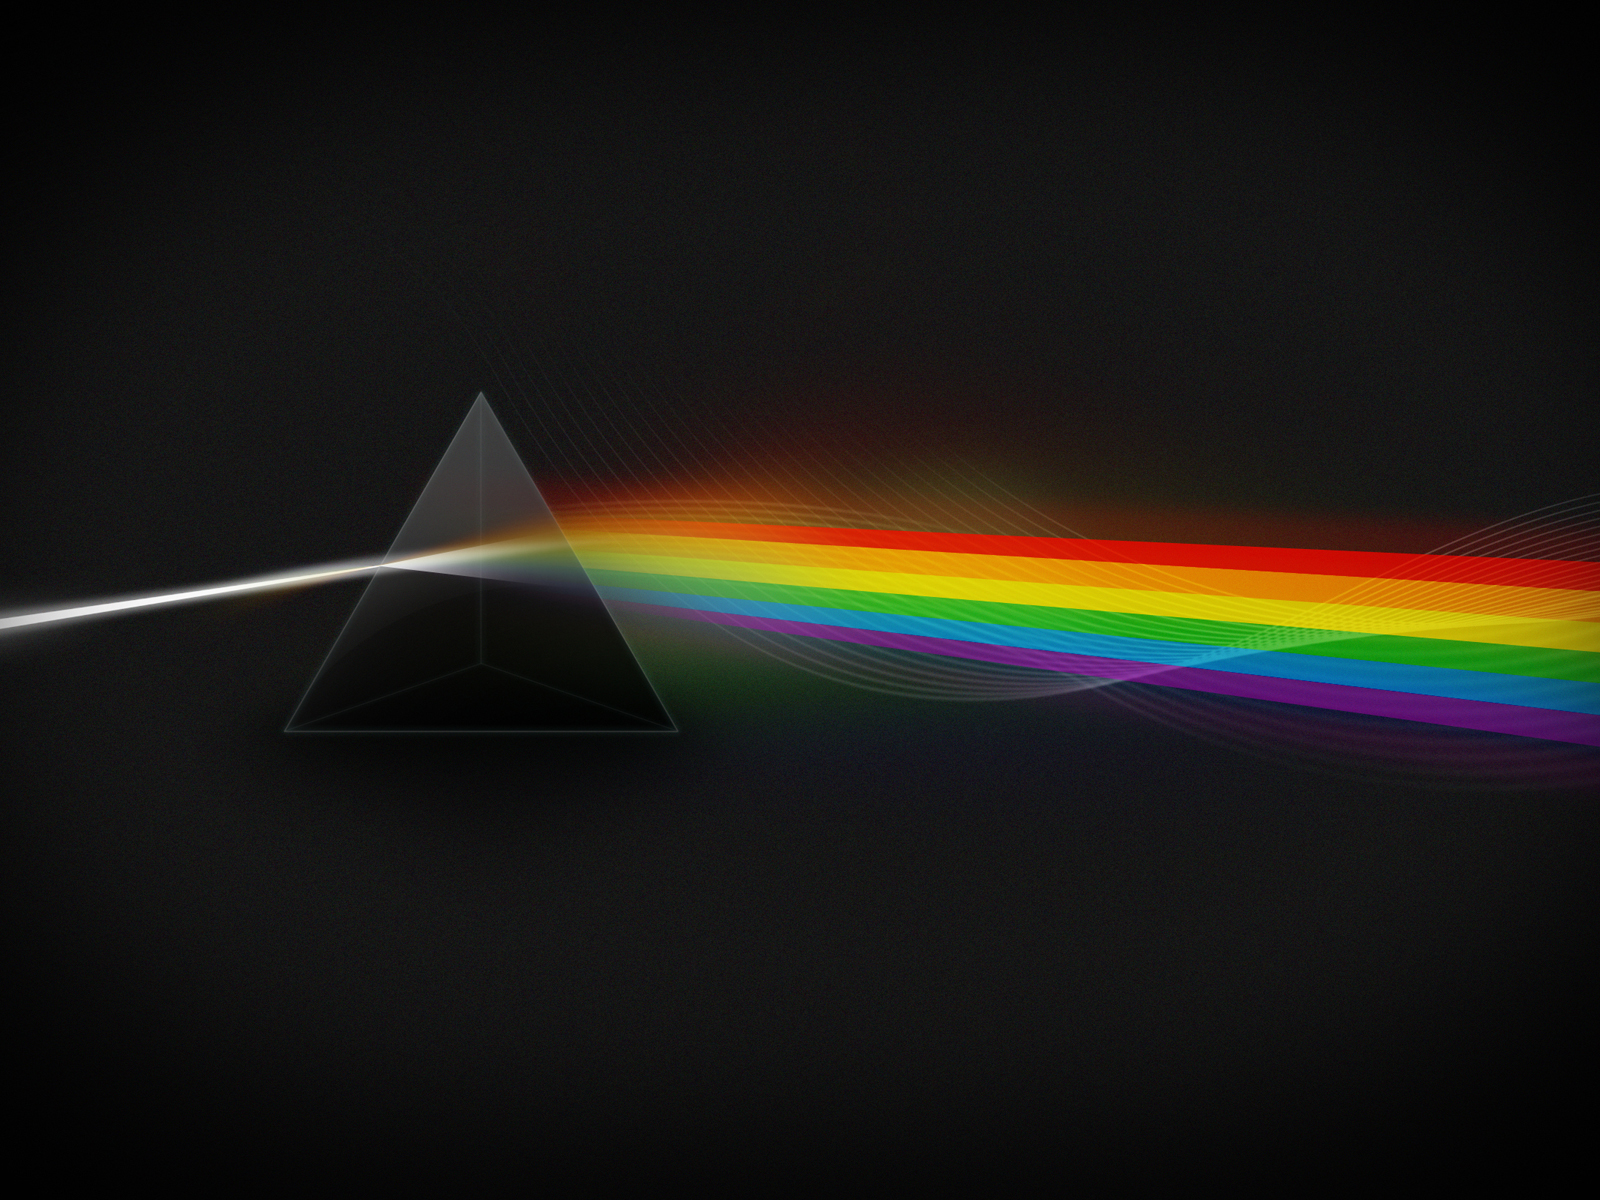 pink floyd the dark side of the moon light spectrum 1600x1200jpg 1600x1200